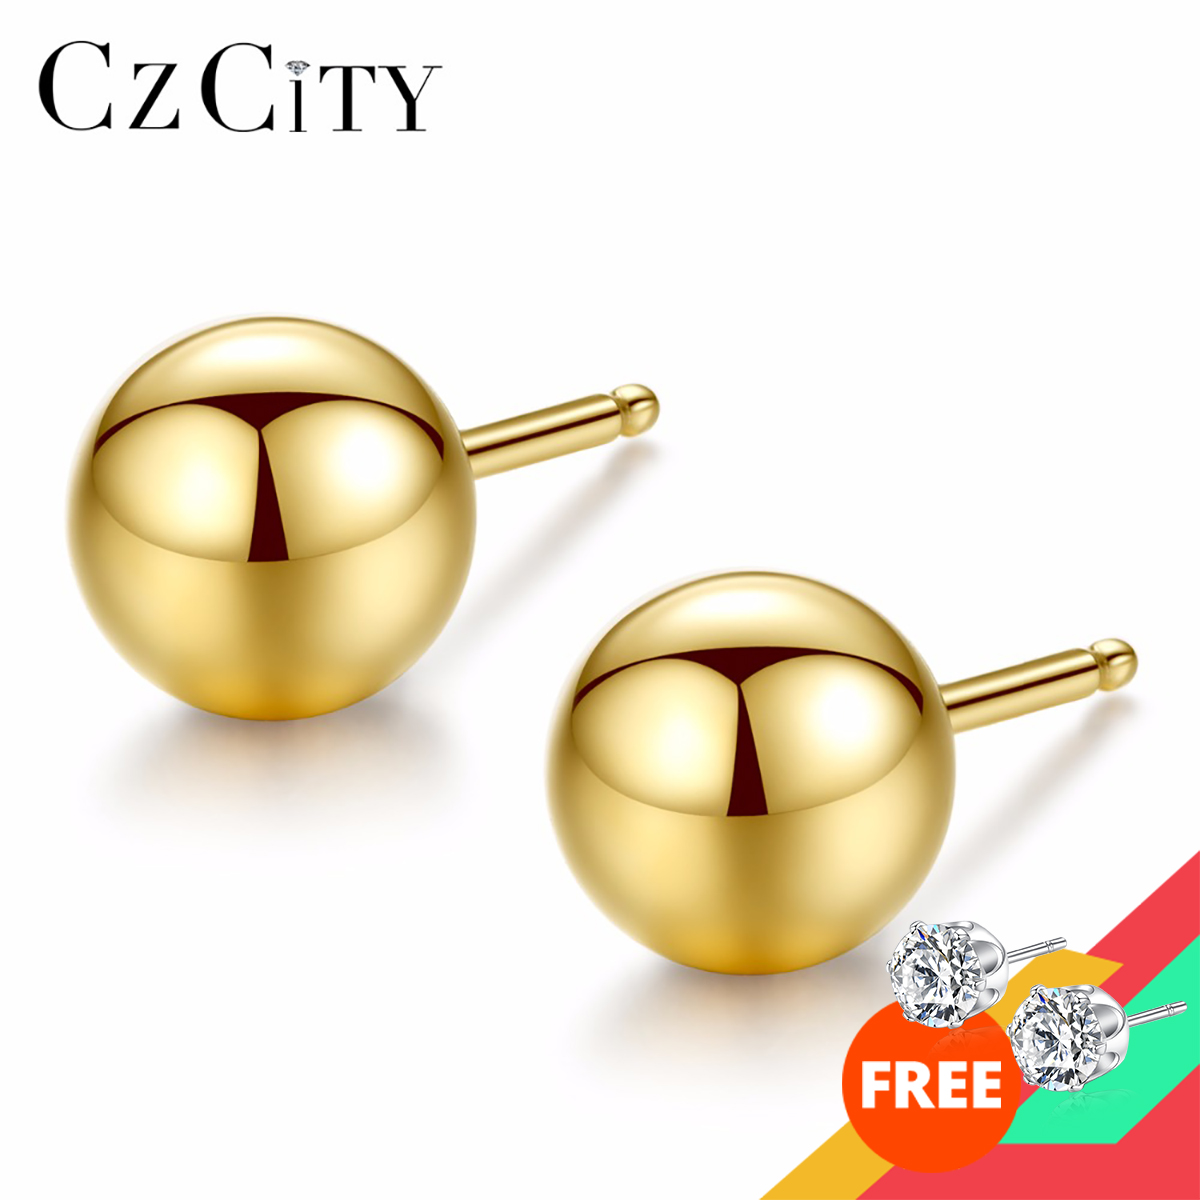 CZCITY Luxury Brand Charm Authentic Pure 18k Yellow Gold Round Bead Ball Stud Earrings For Women Daily Wear Gold Earring Jewelry